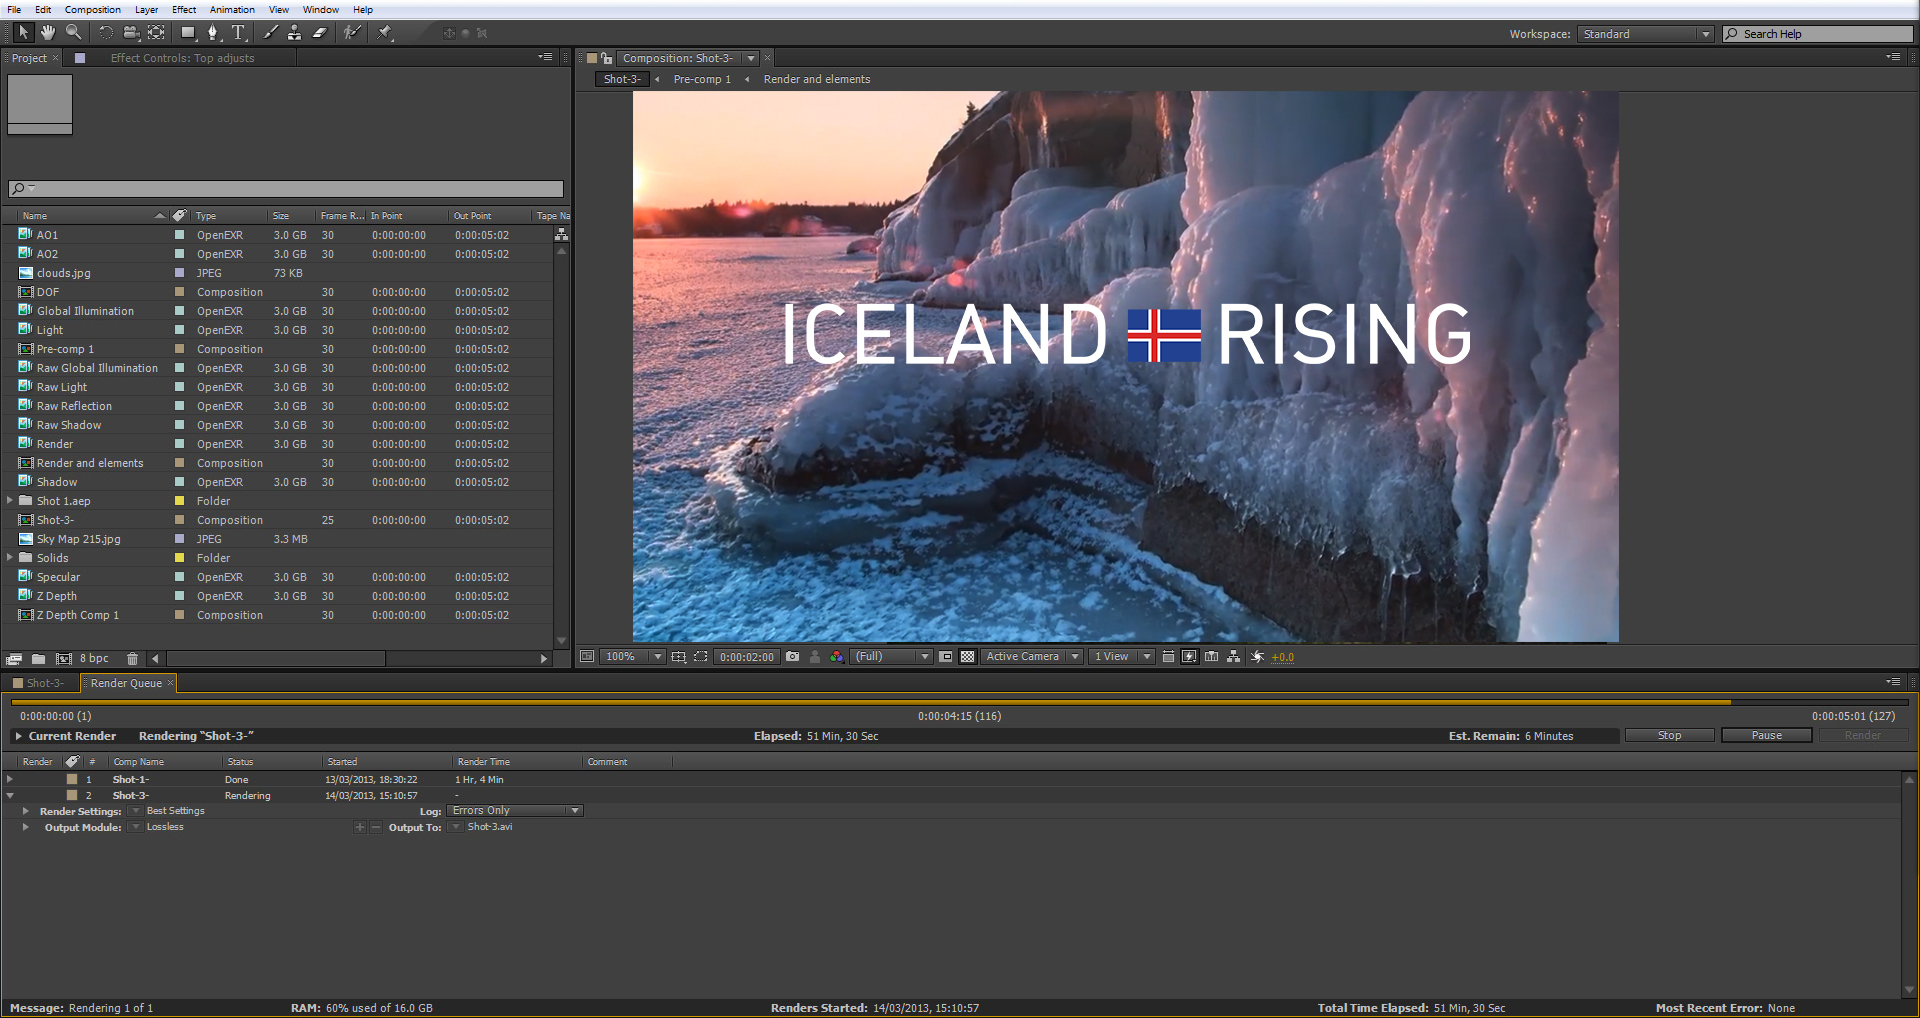 Editing session for Iceland Rising